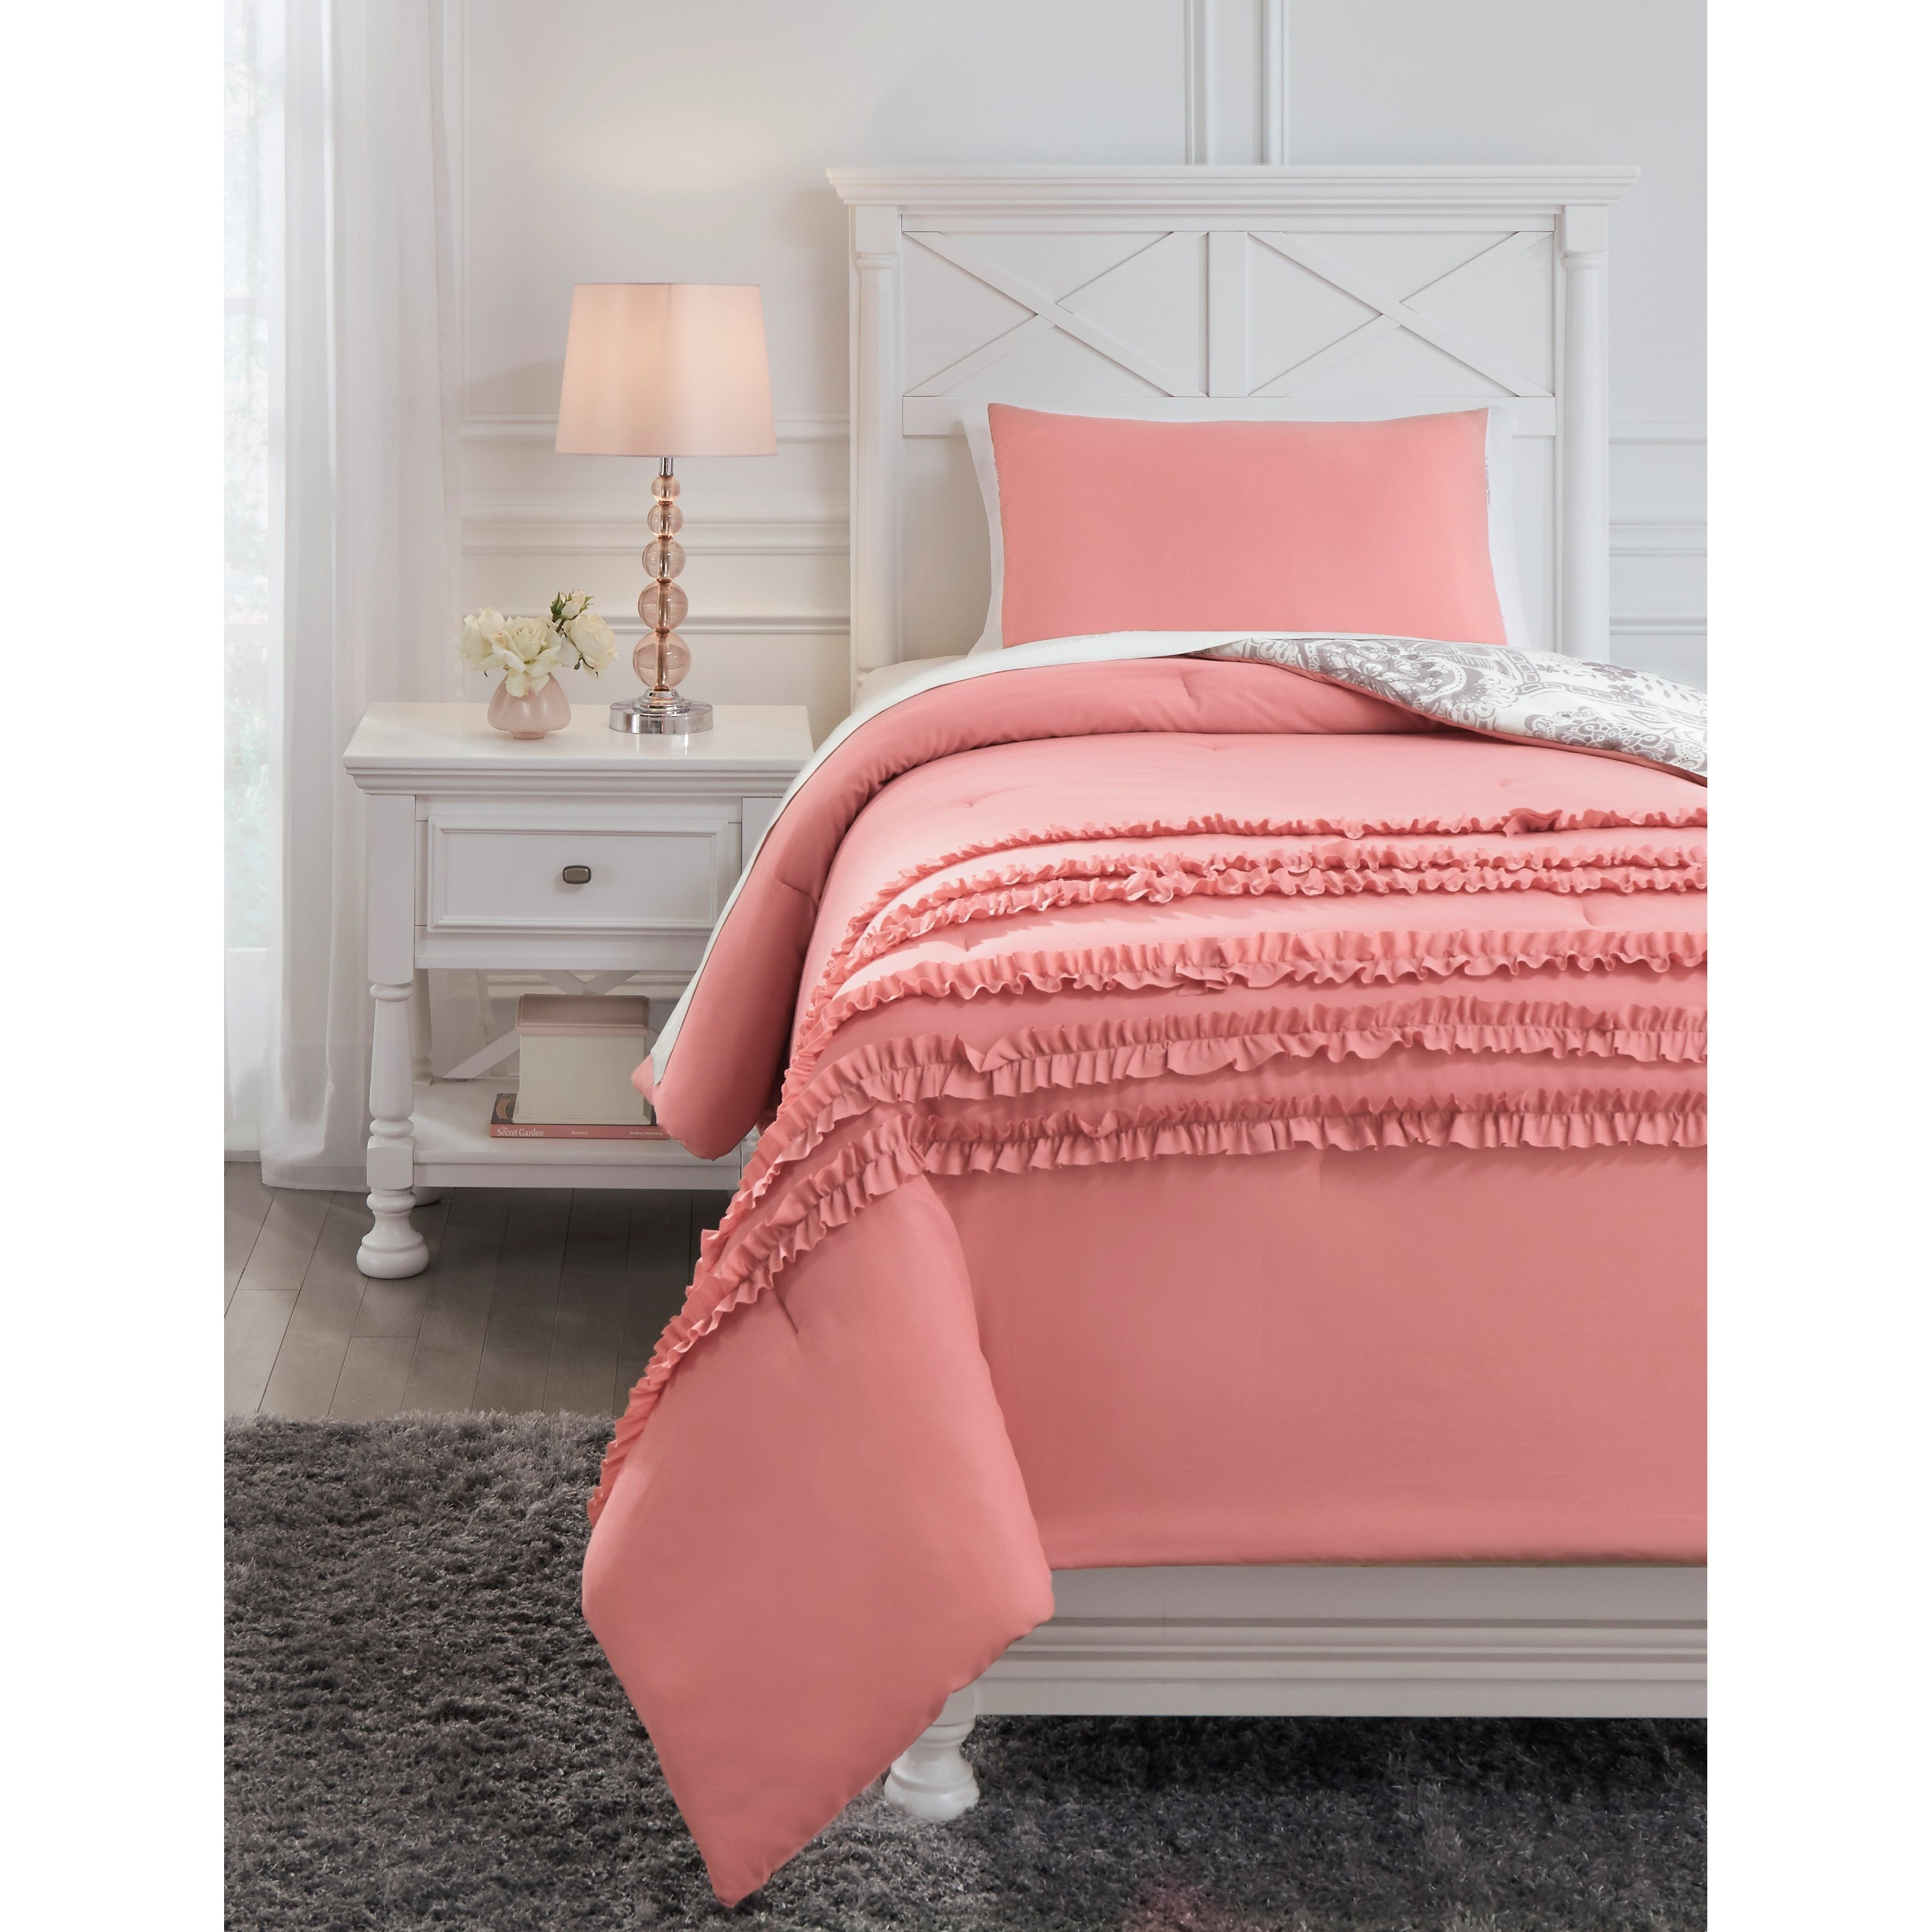 Bedding Sets Twin Avaleigh Pink/White/Gray Comforter Set by Signature Design by Ashley at Household Furniture